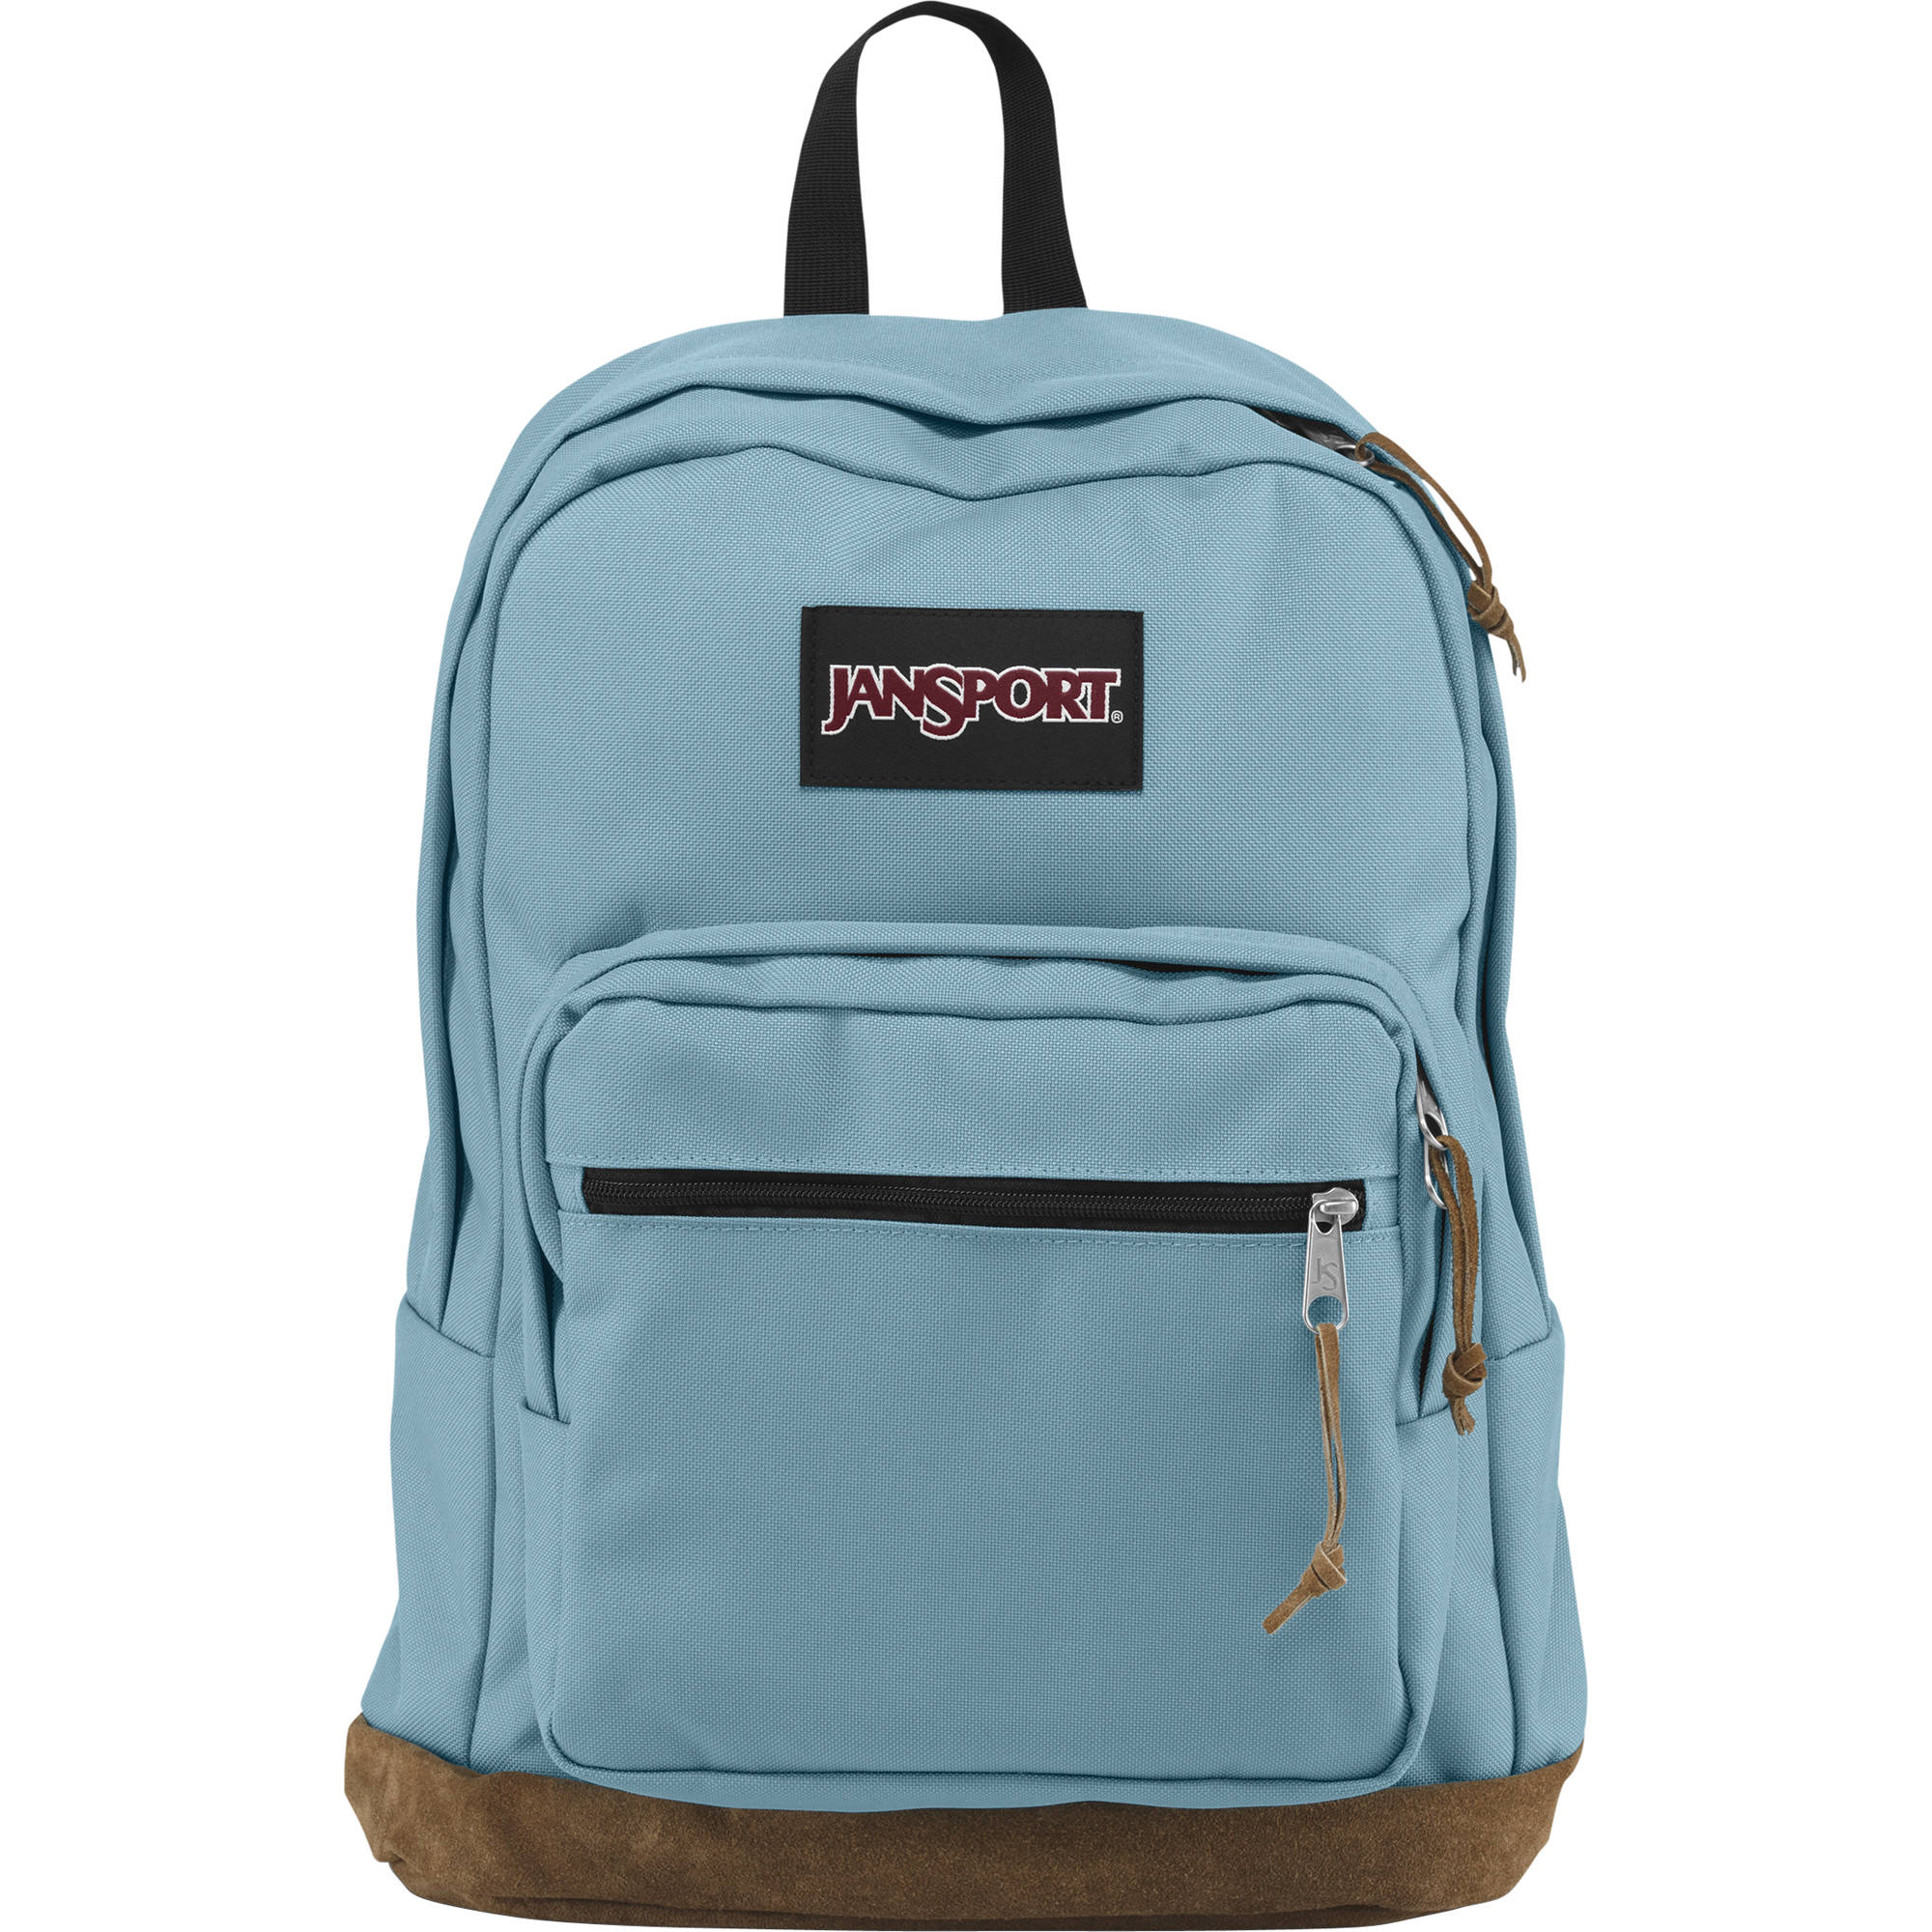 Jansport Right Backpack pDGBUM89